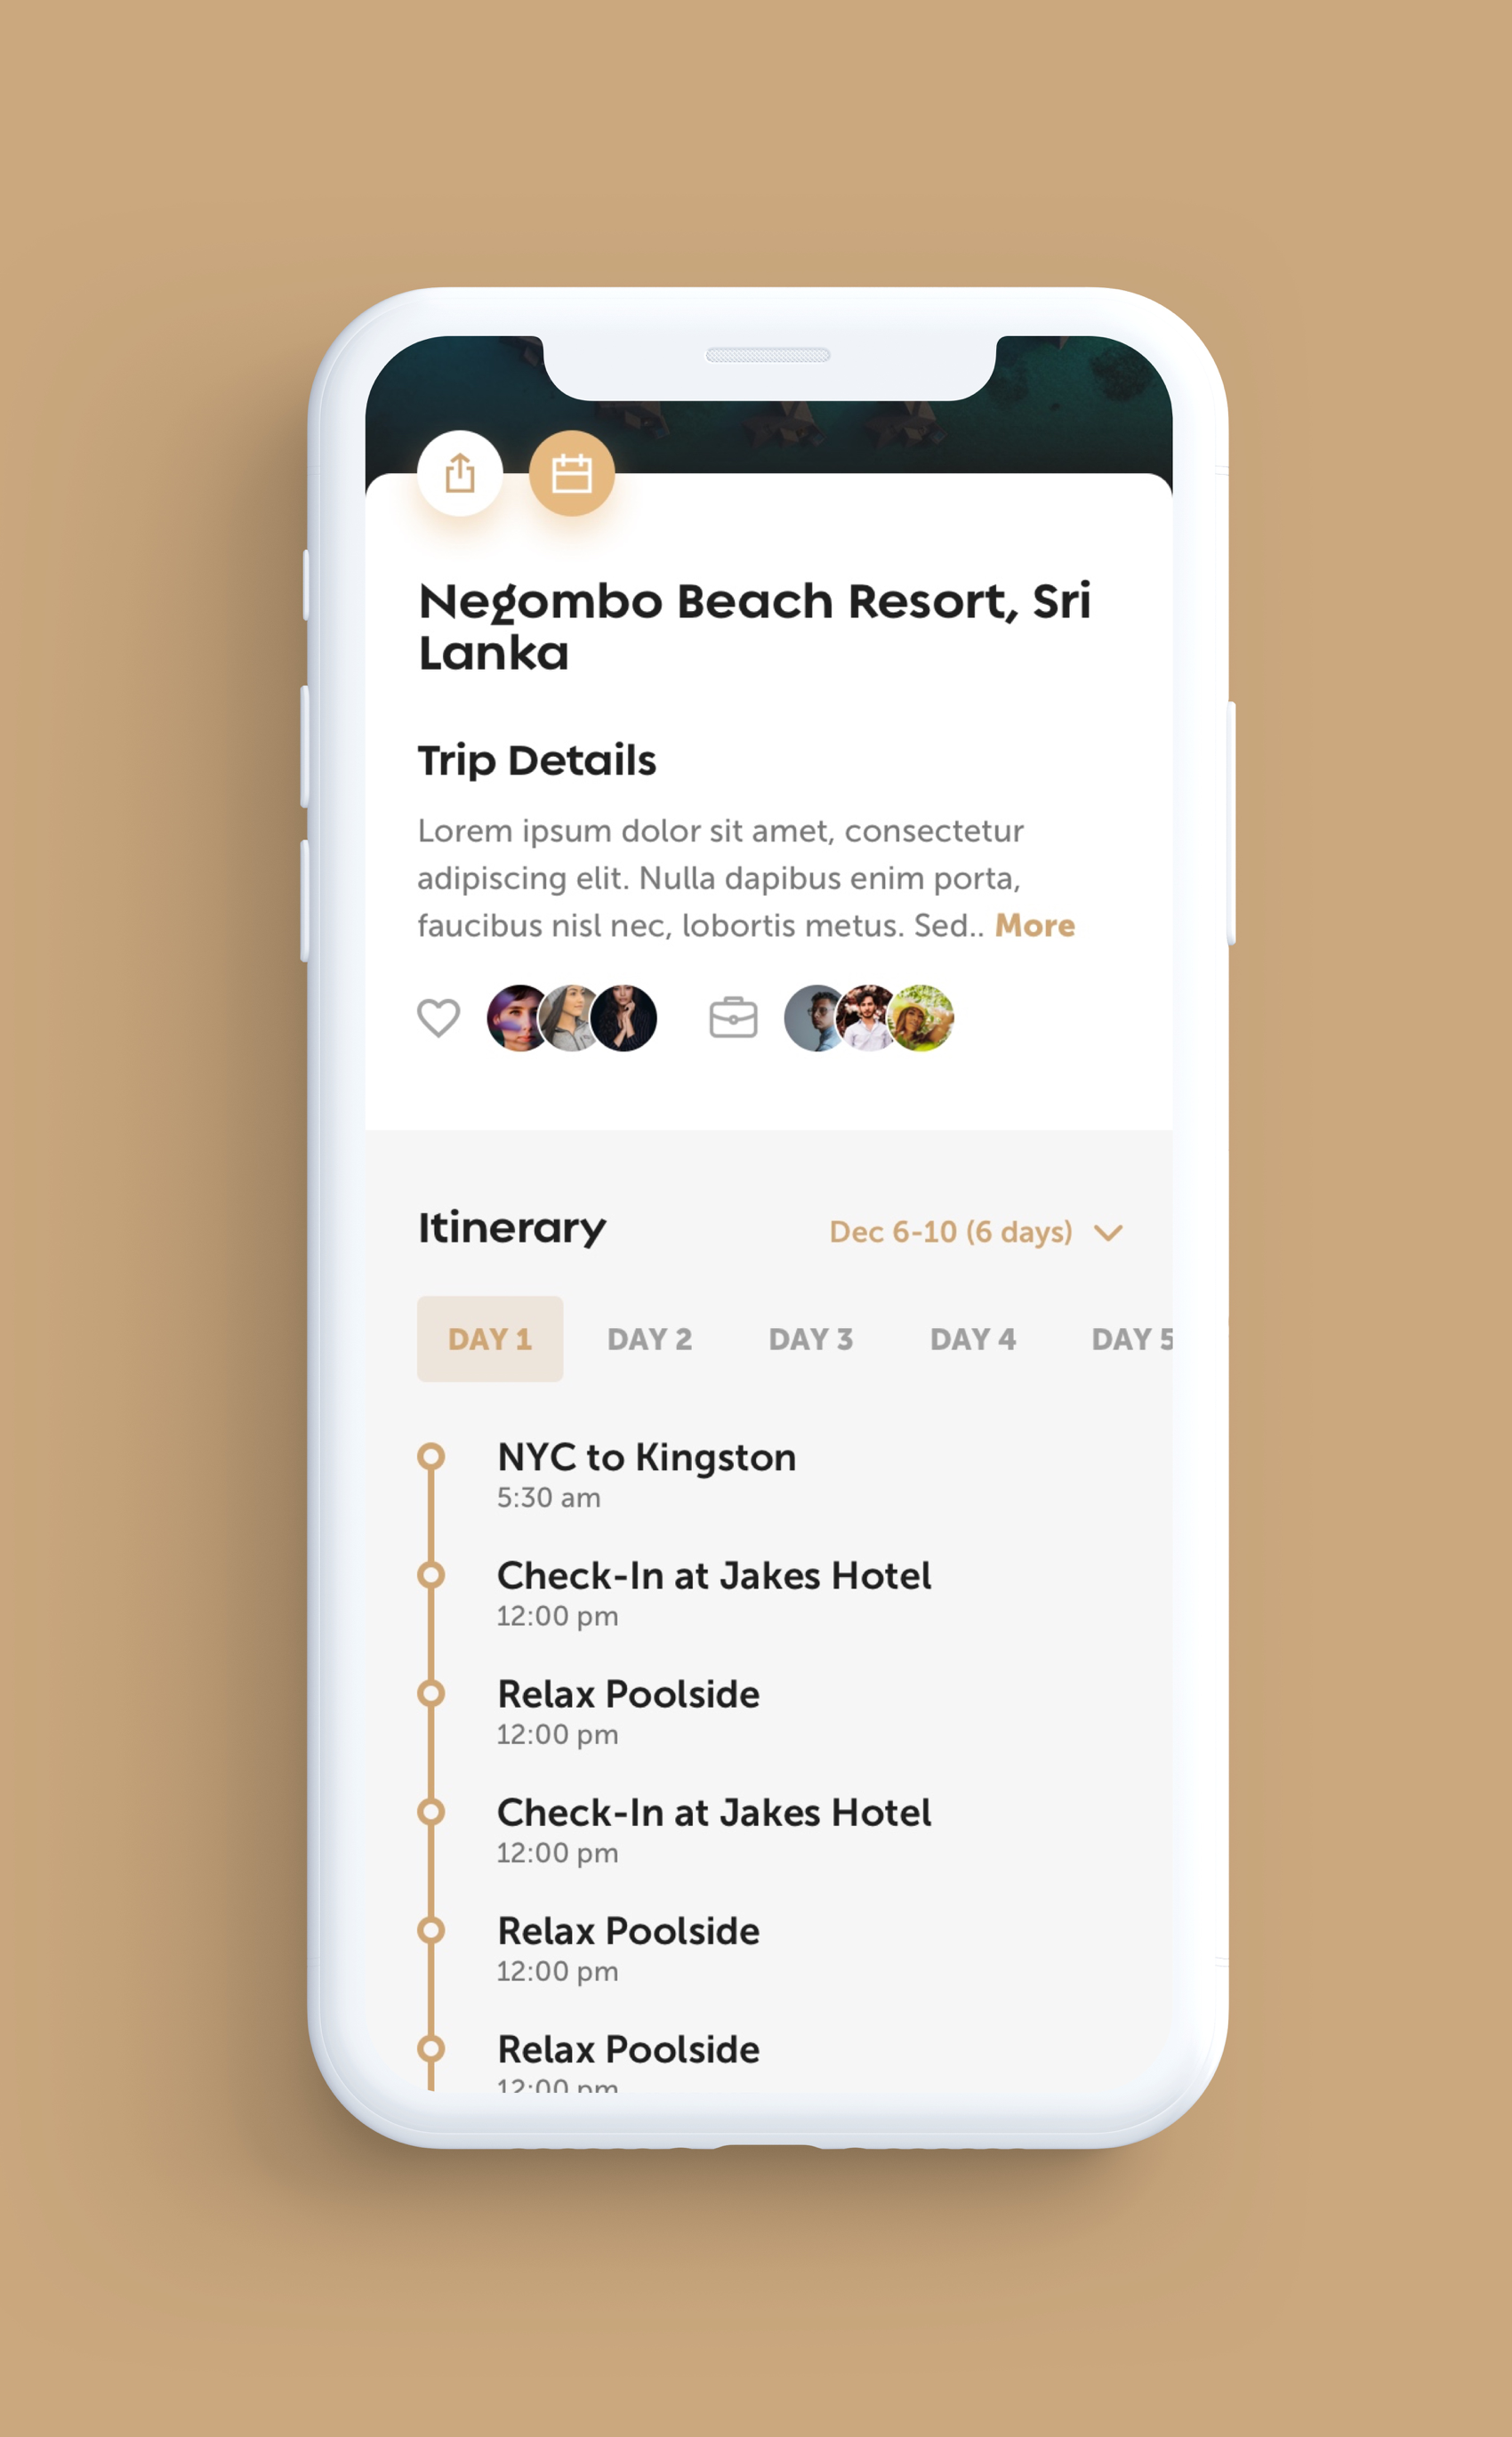 Legends iOS App UI Design – Travel Location Profile, Trip Details and Itinerary